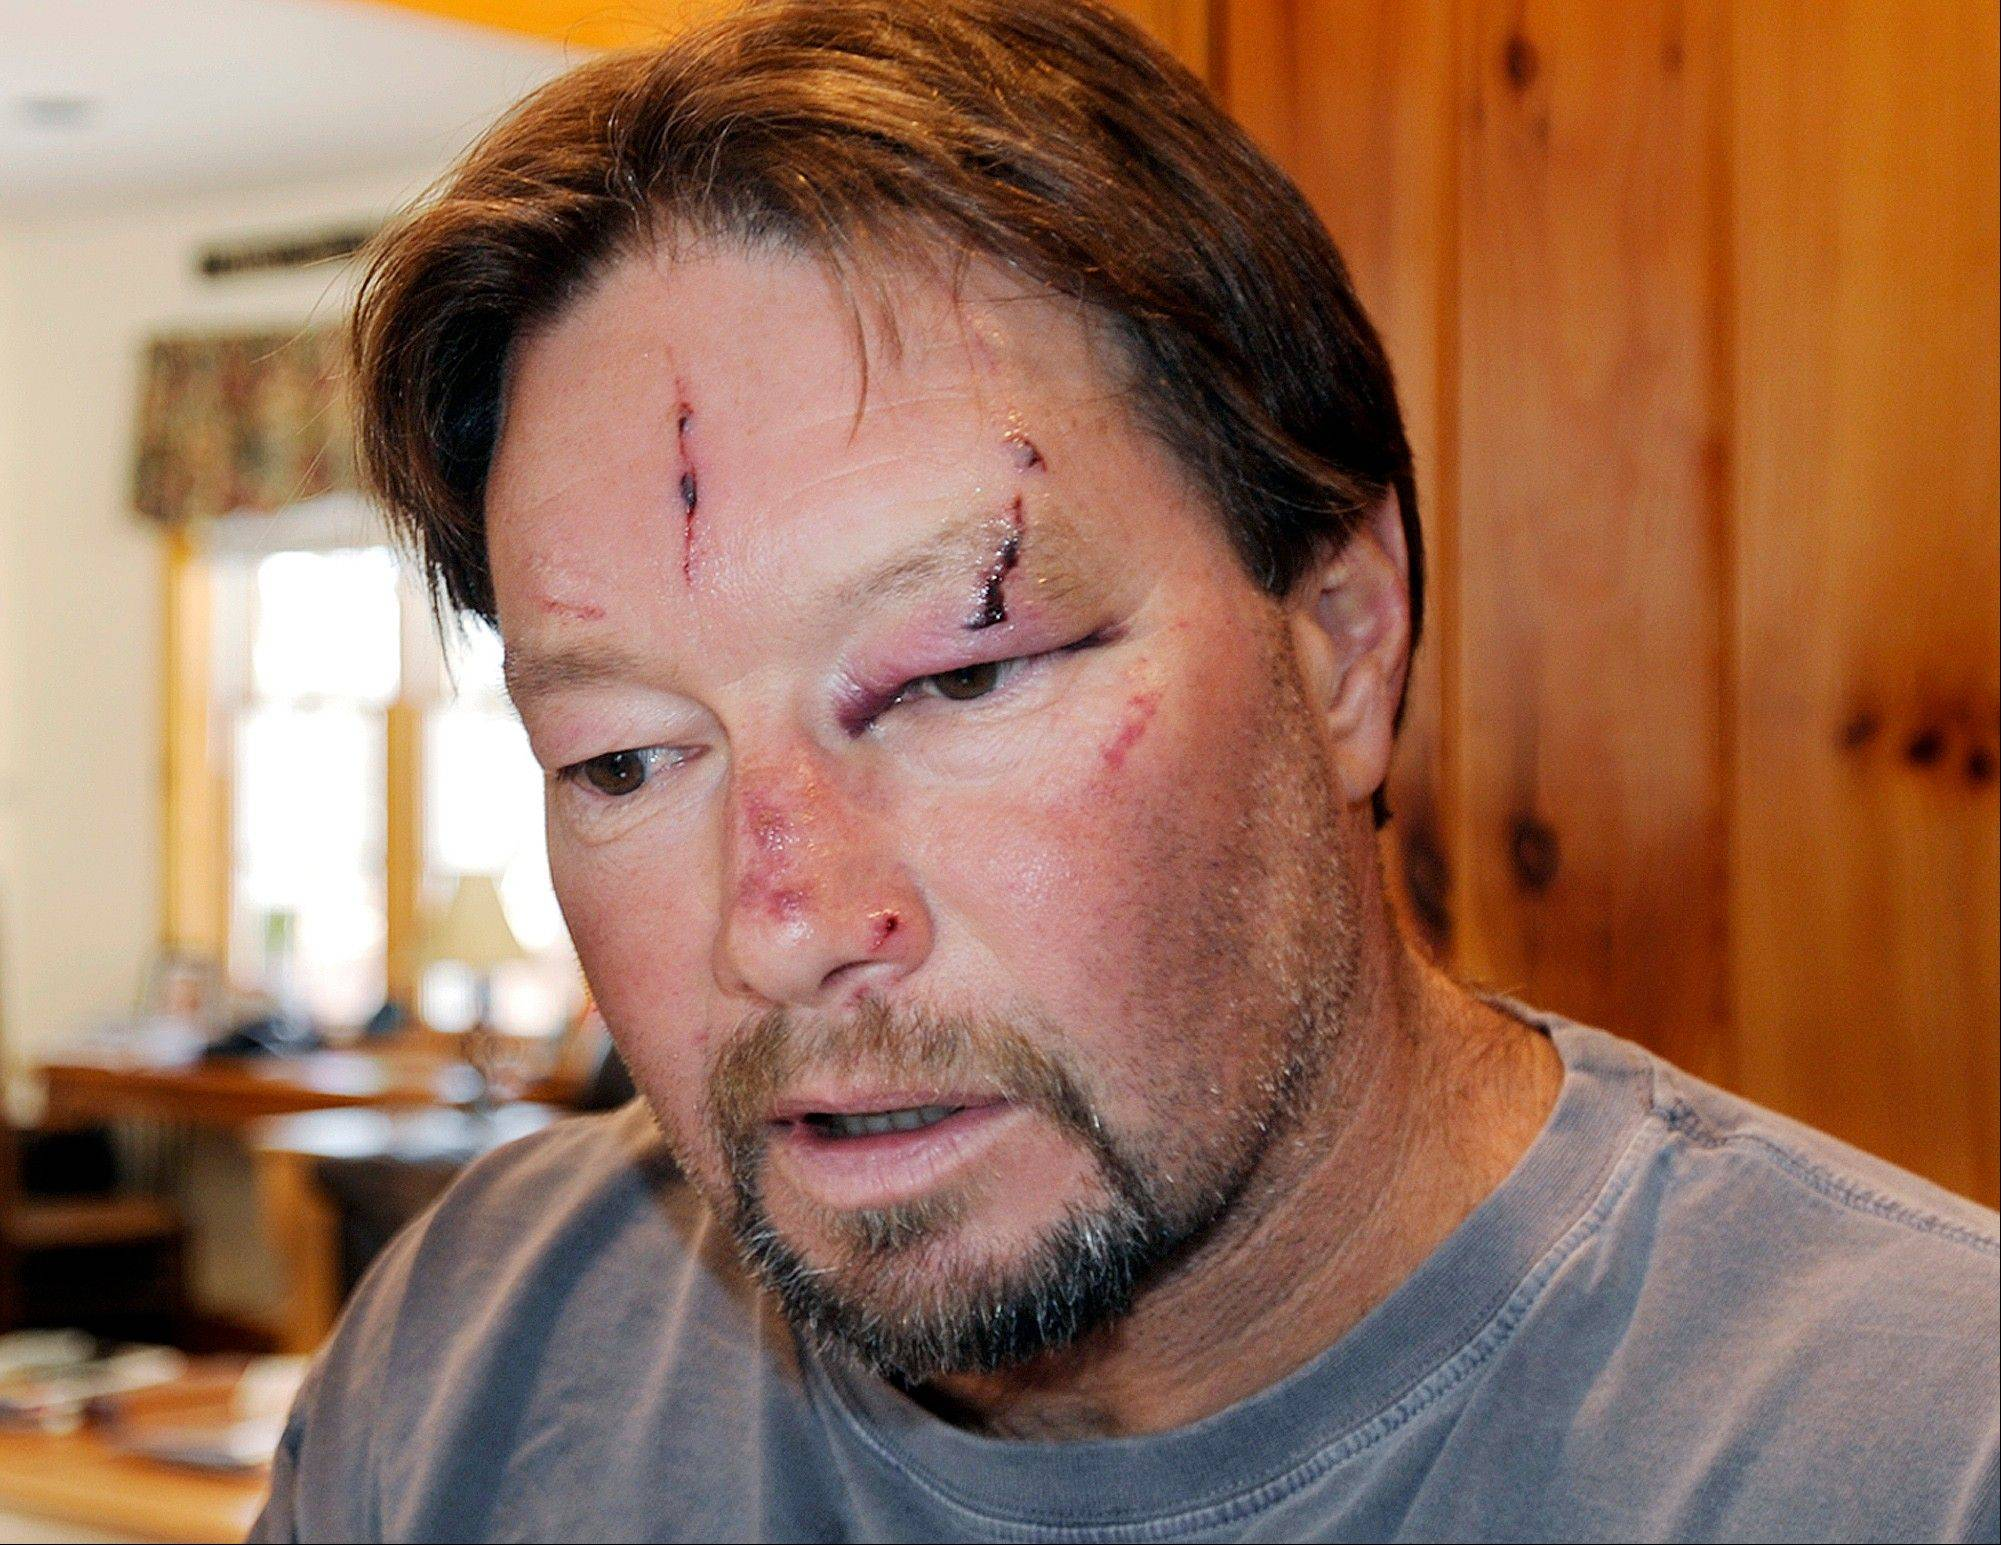 Massachusetts man surives bobcat attack in garage